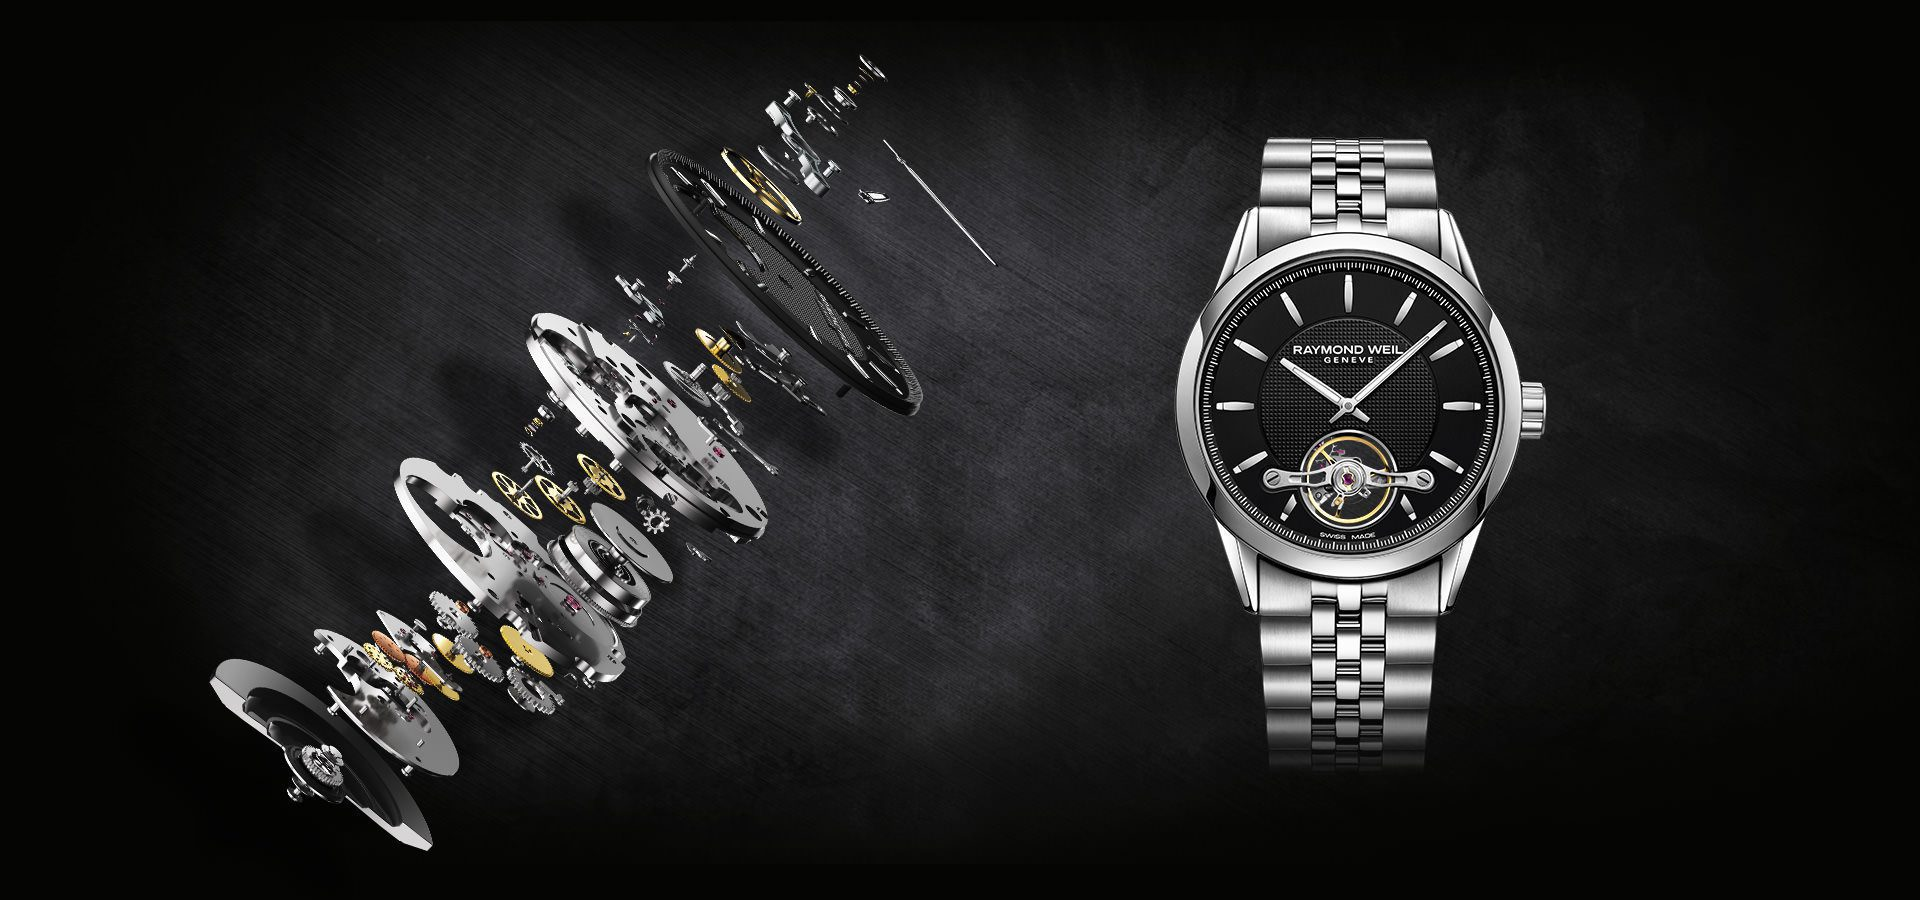 9da6306c4 Our Story - Swiss Watchmaking Know-how | RAYMOND WEIL